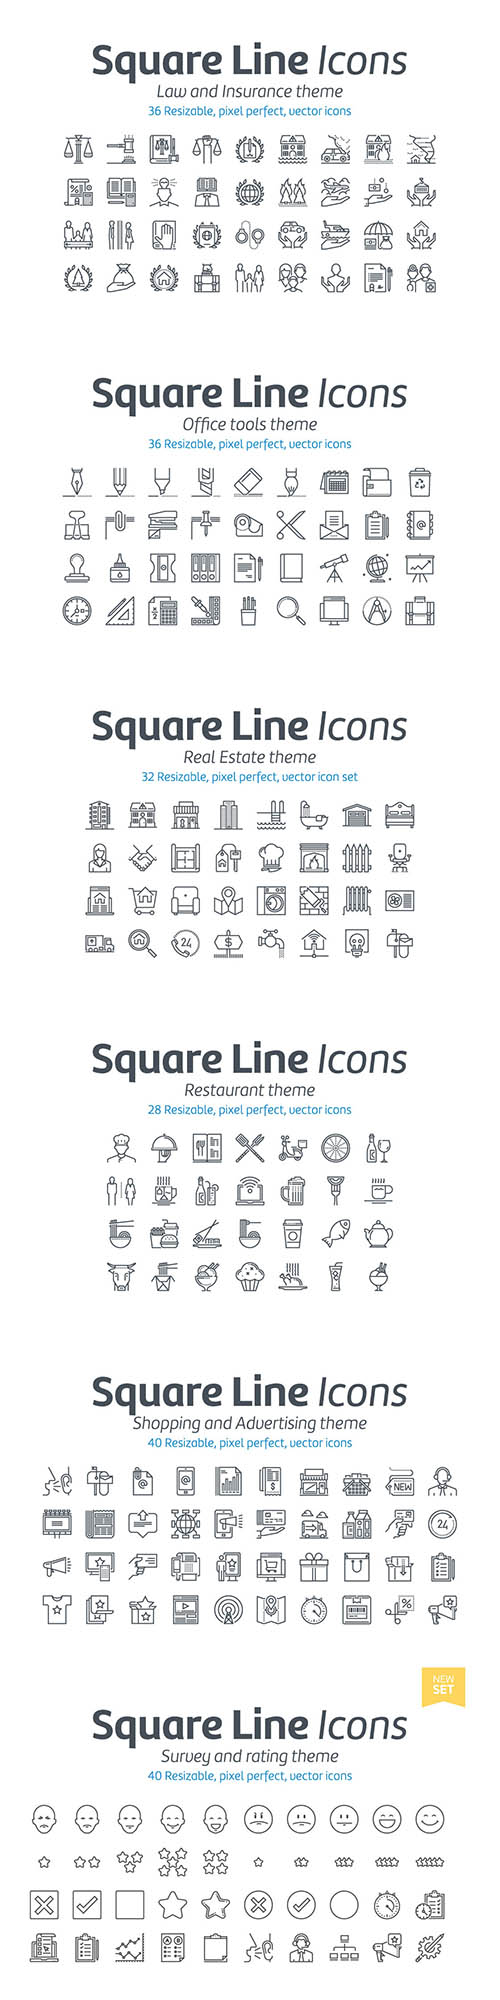 800+ Vector Line Icons for Graphics, Web and UI Design - 1